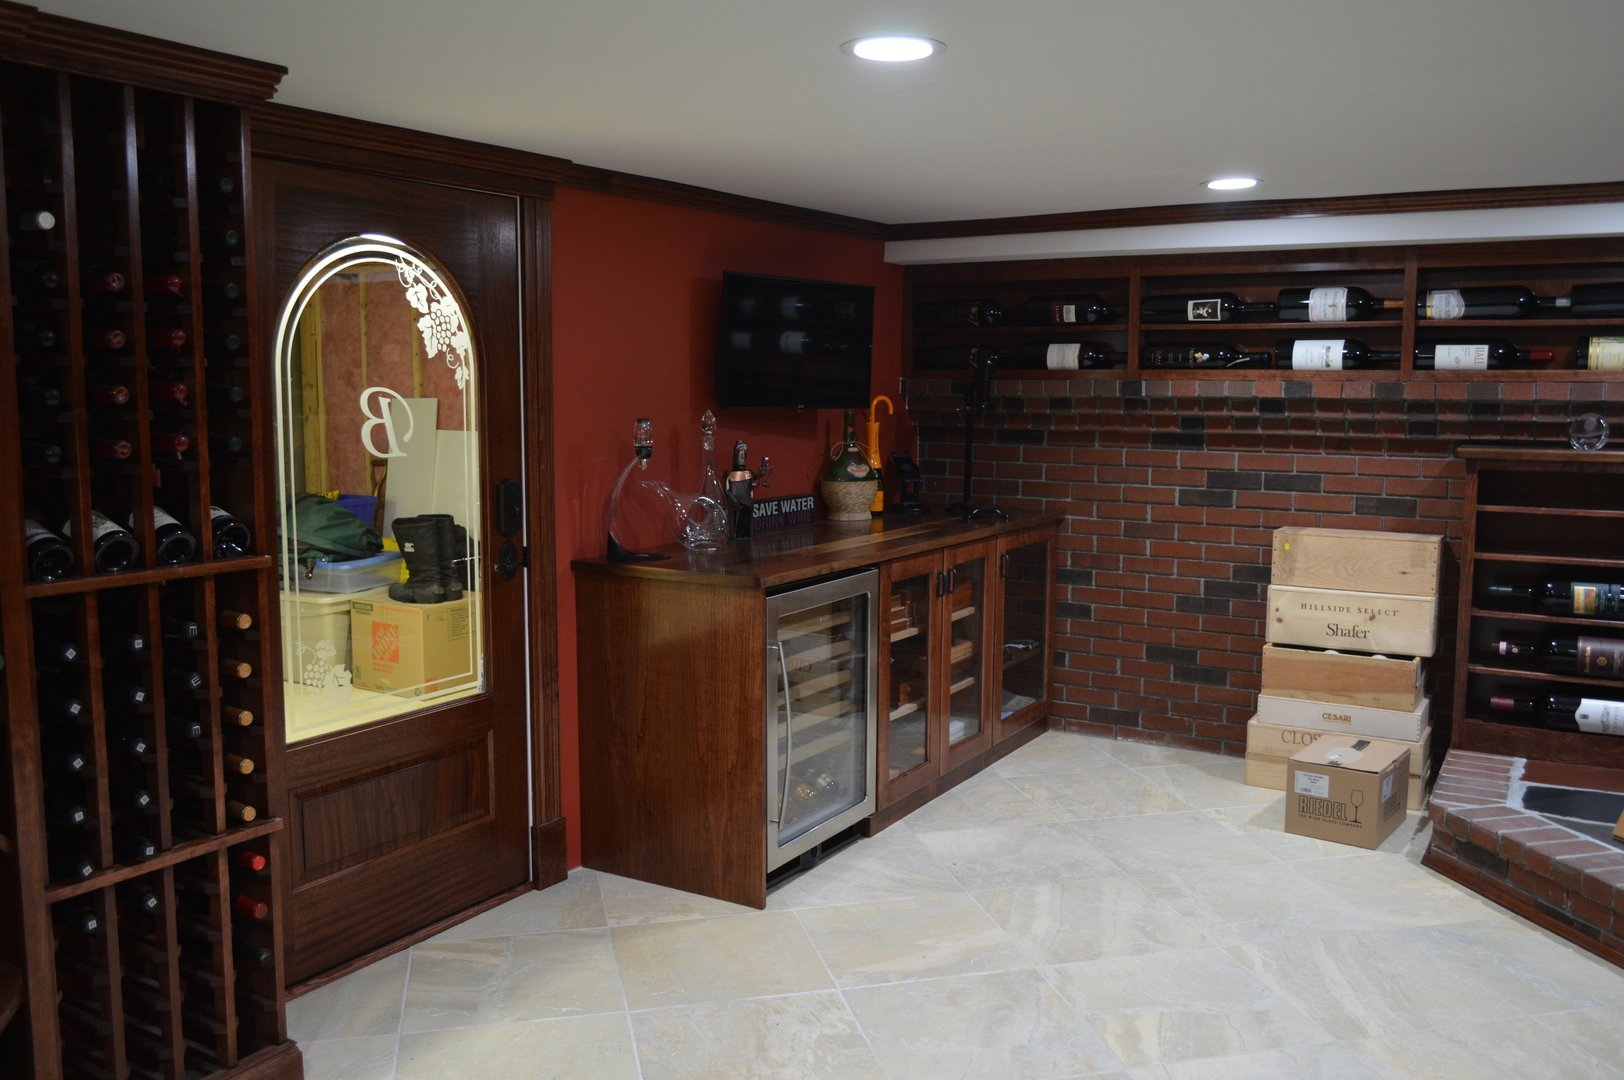 View of white wine refrigerator, humidor, glass cabinet and